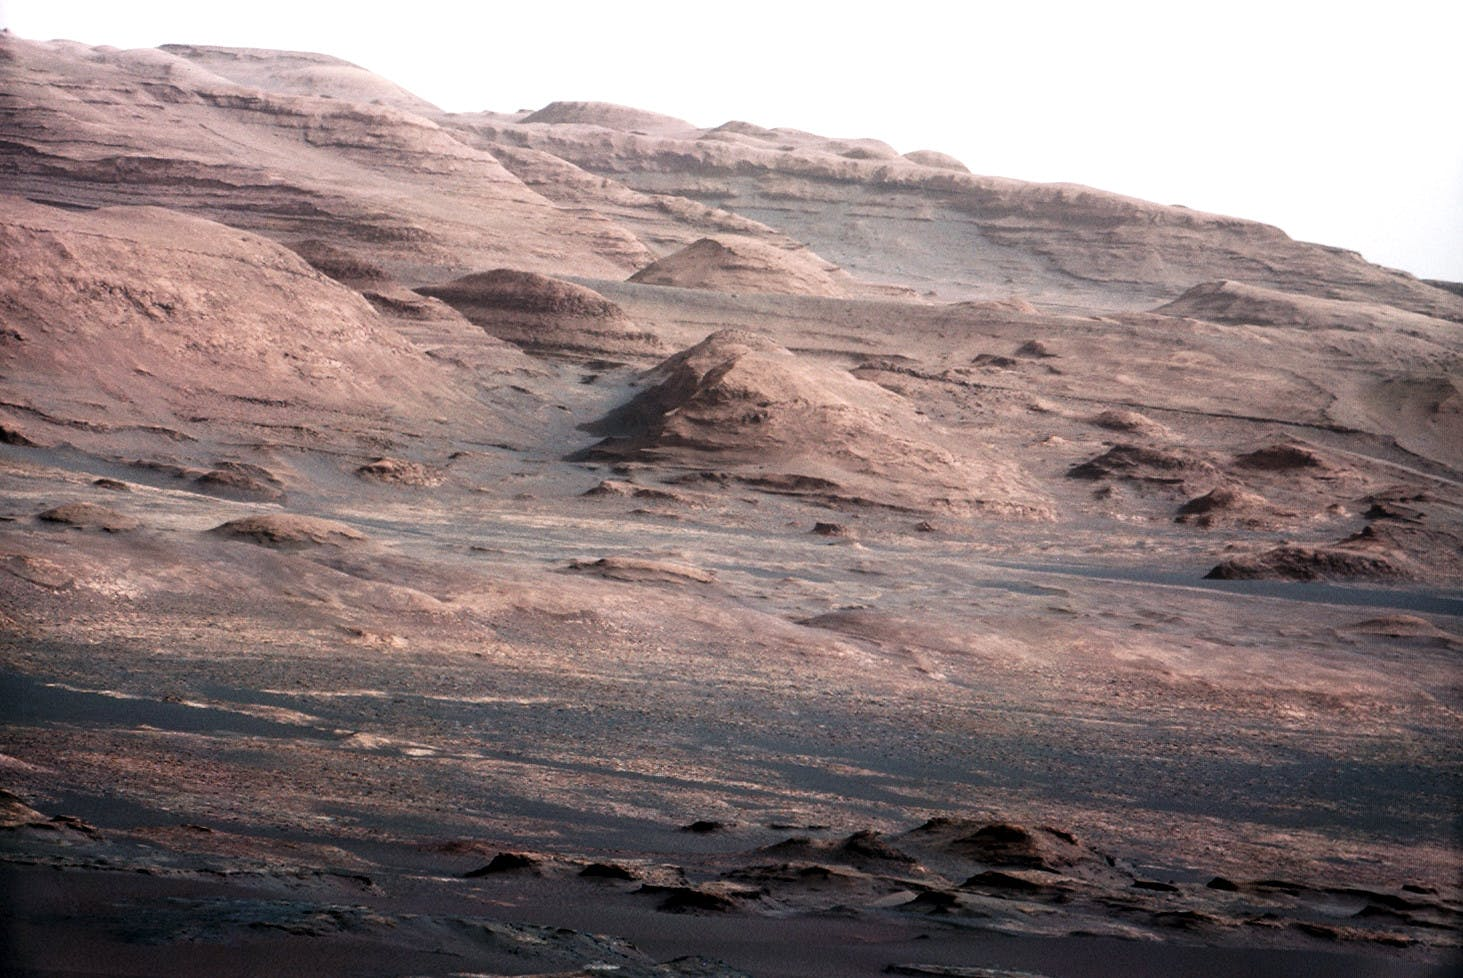 Mars shot from the Curiosity Rover